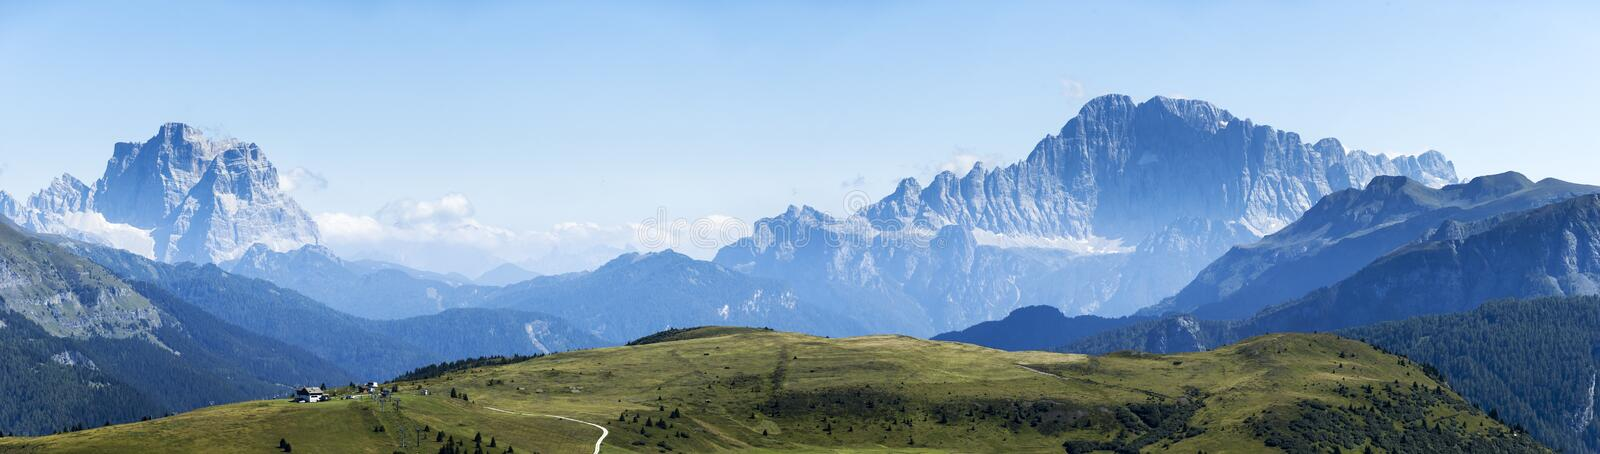 Mountains summer landscape royalty free stock photo